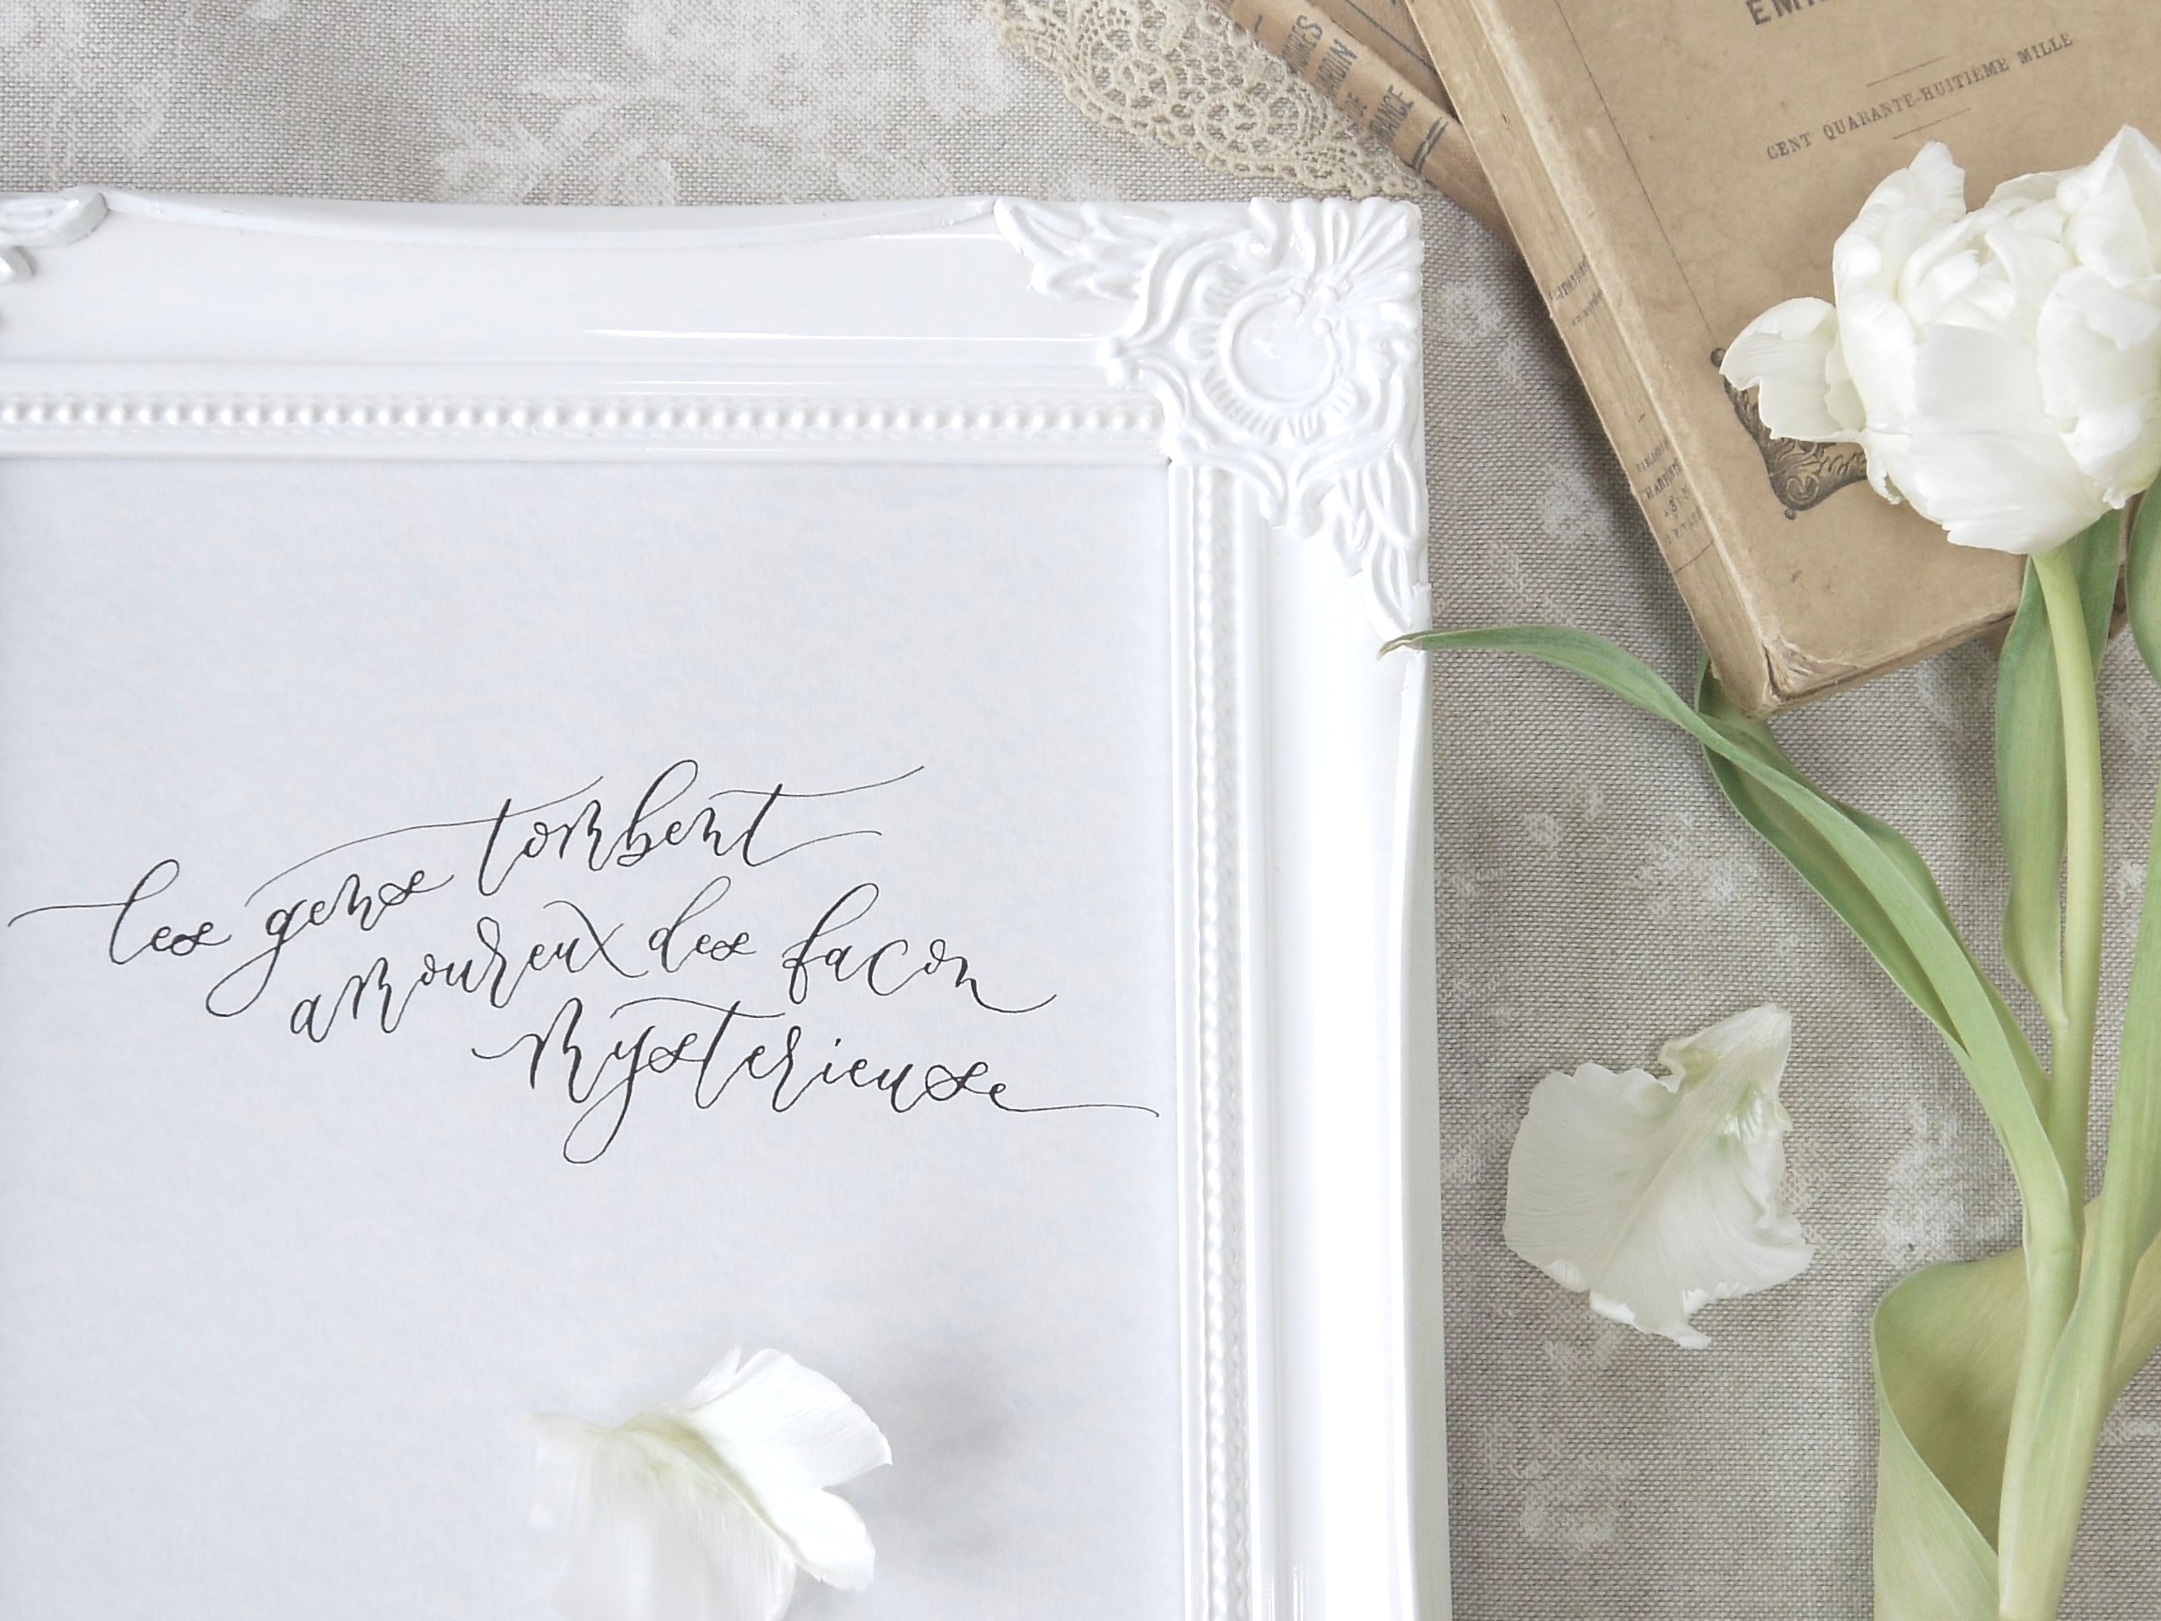 Calligraphy and shabby chic styling go hand in hand